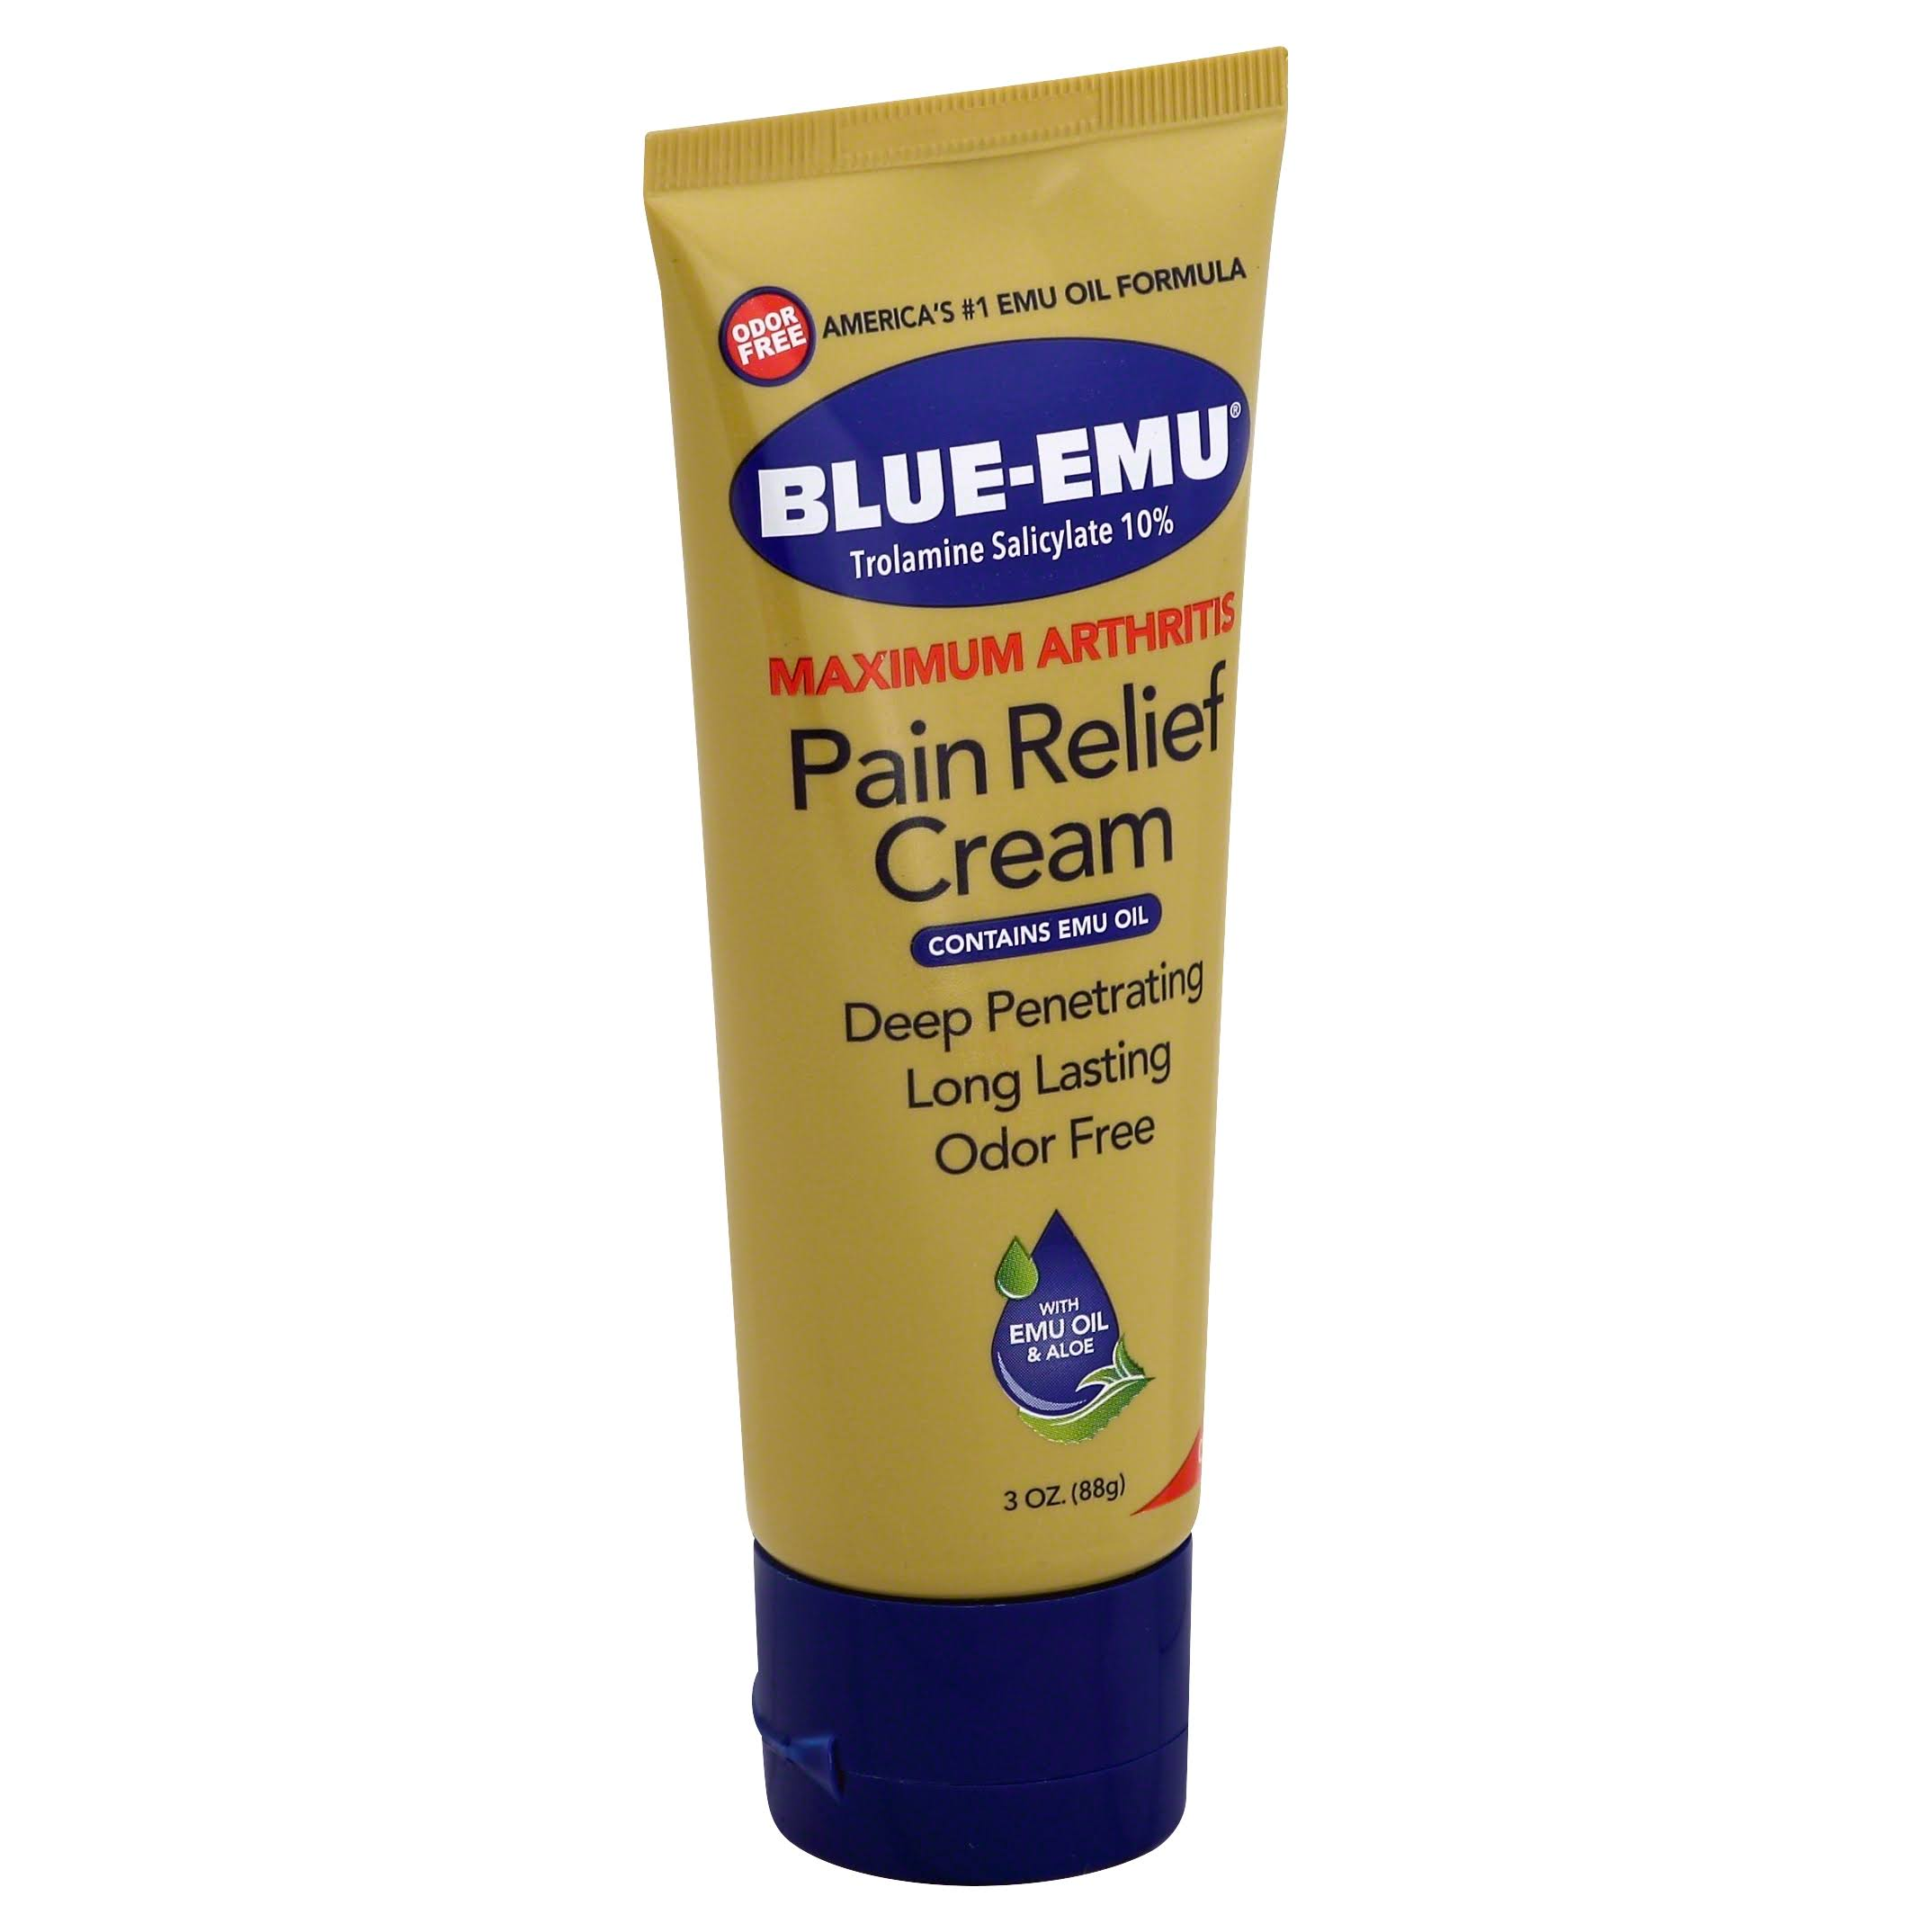 Blue-Emu Maximum Arthritis Pain Relief Cream - 3oz